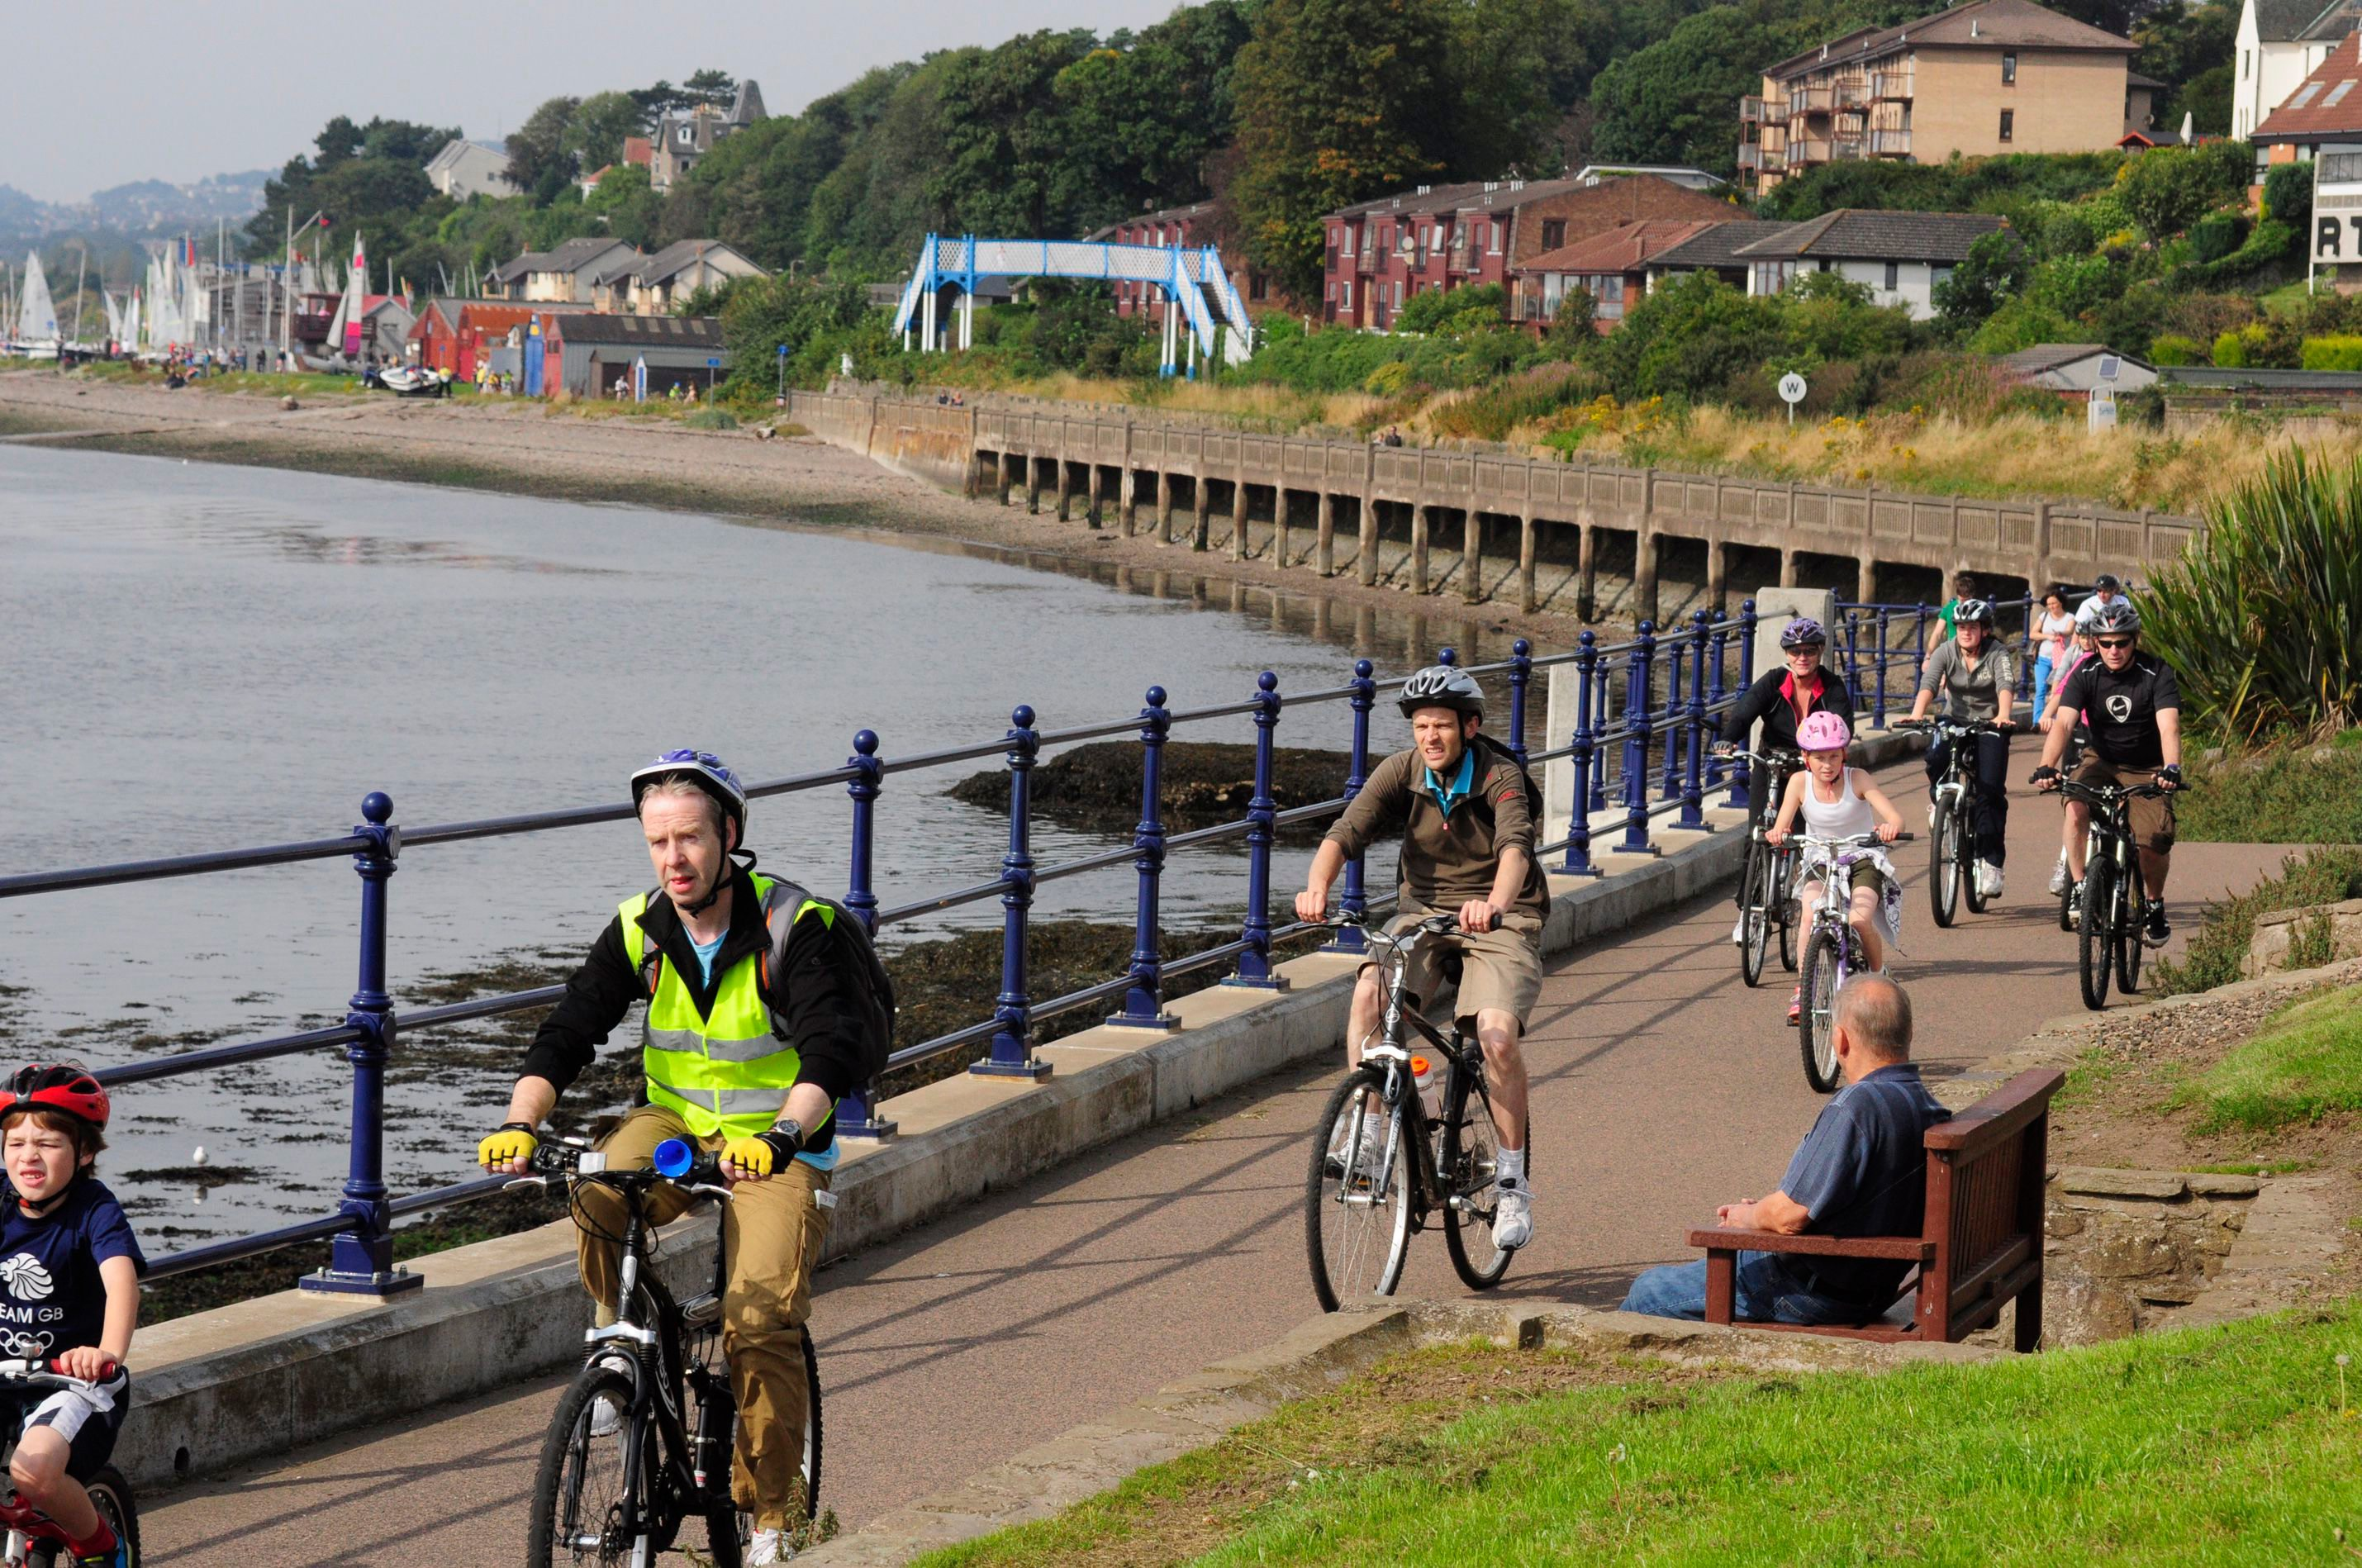 The coastal protection measures would affect the Grassy Beach area of Broughty Ferry